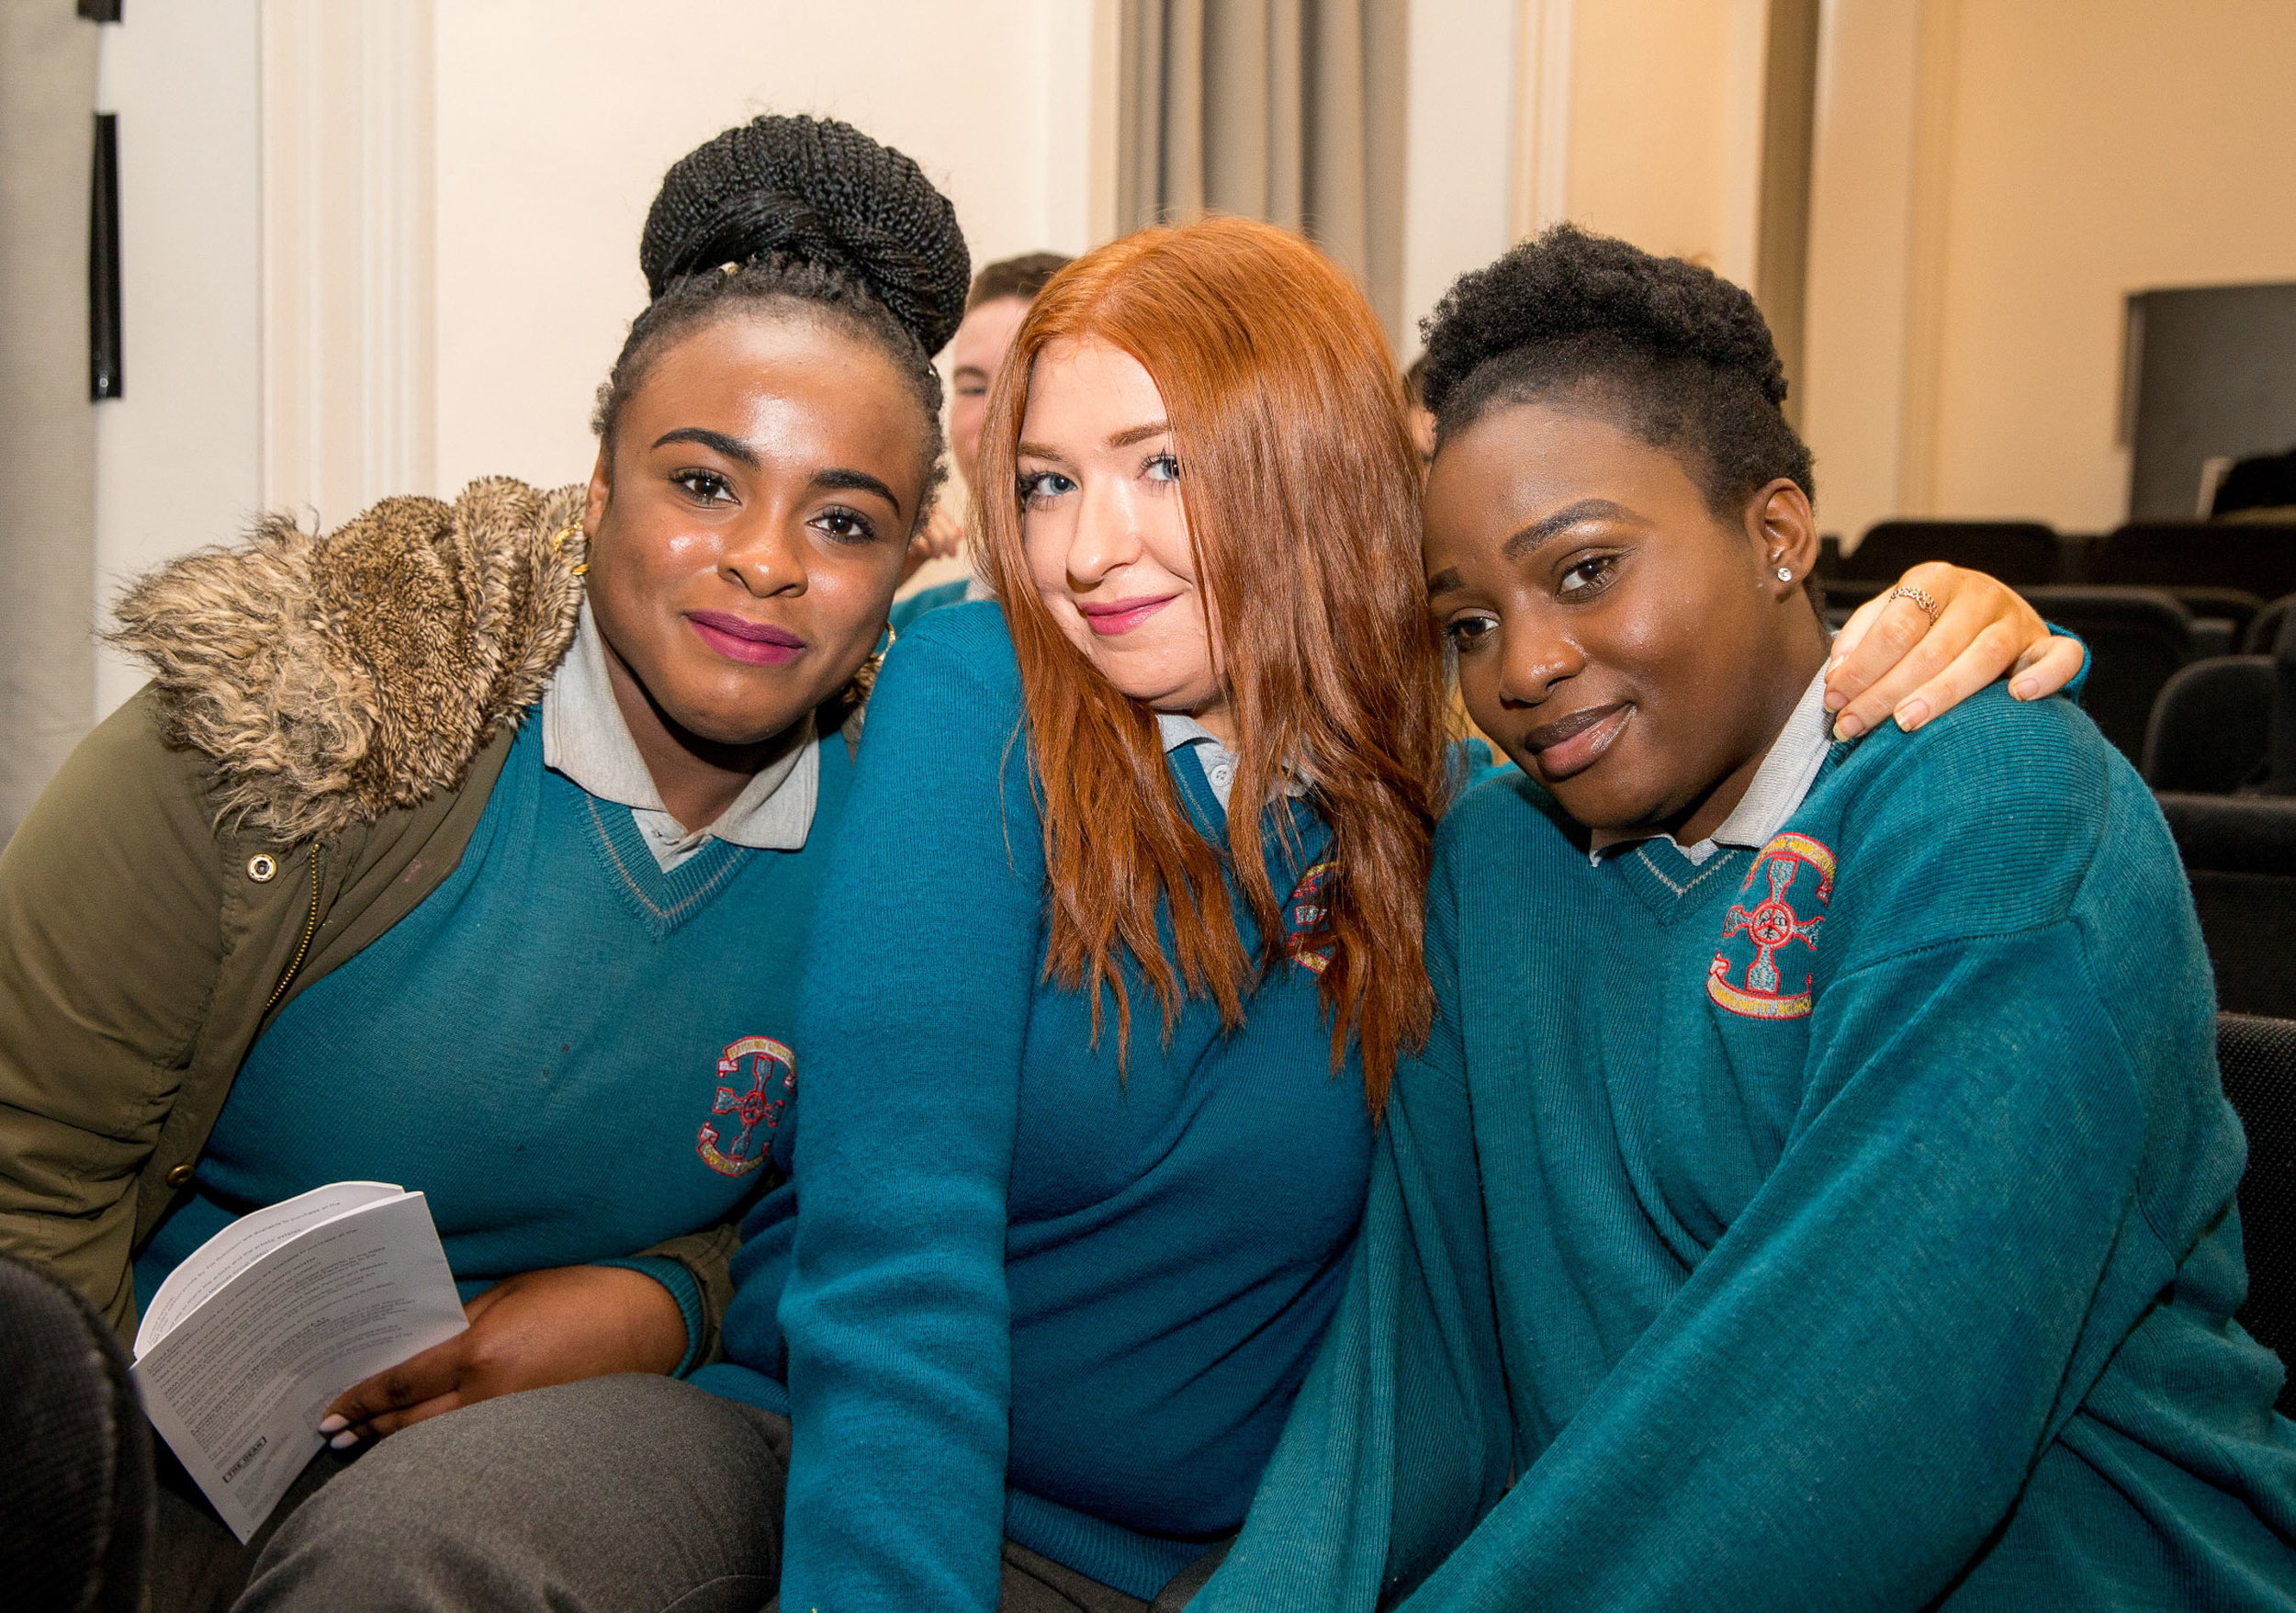 From left - Cledia, Patricia, Jevic - students from Hartstown Community School